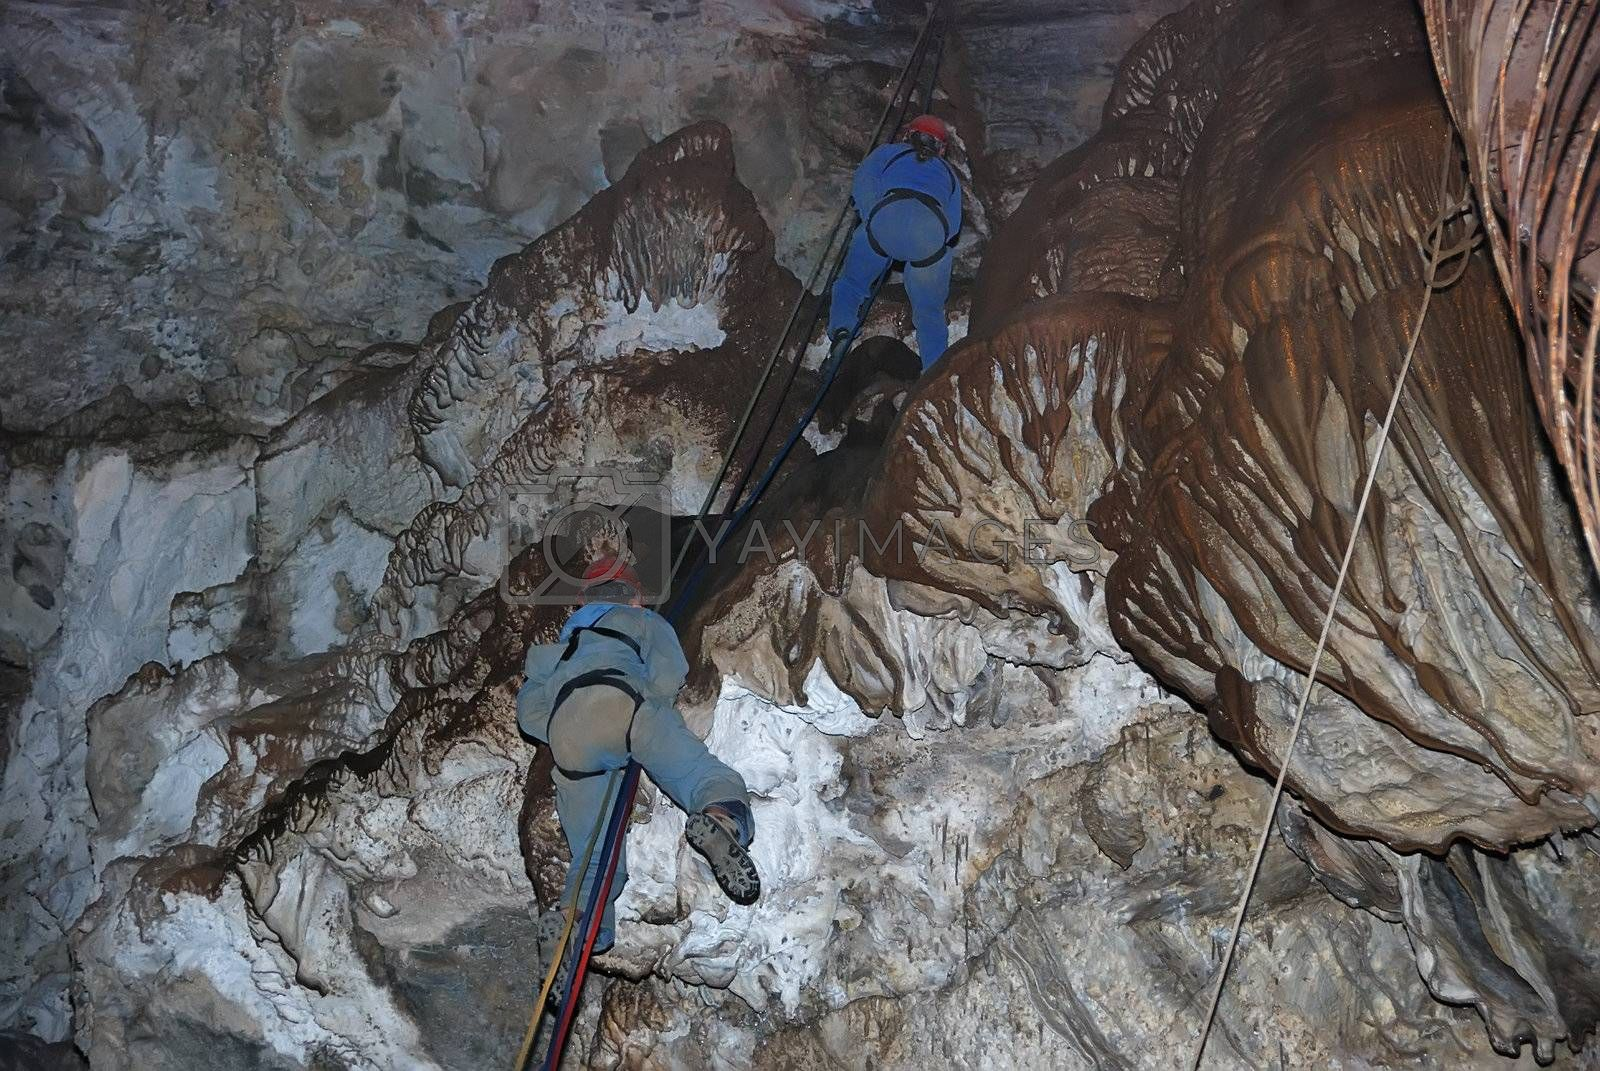 Two climbers on a rope in a cavern.